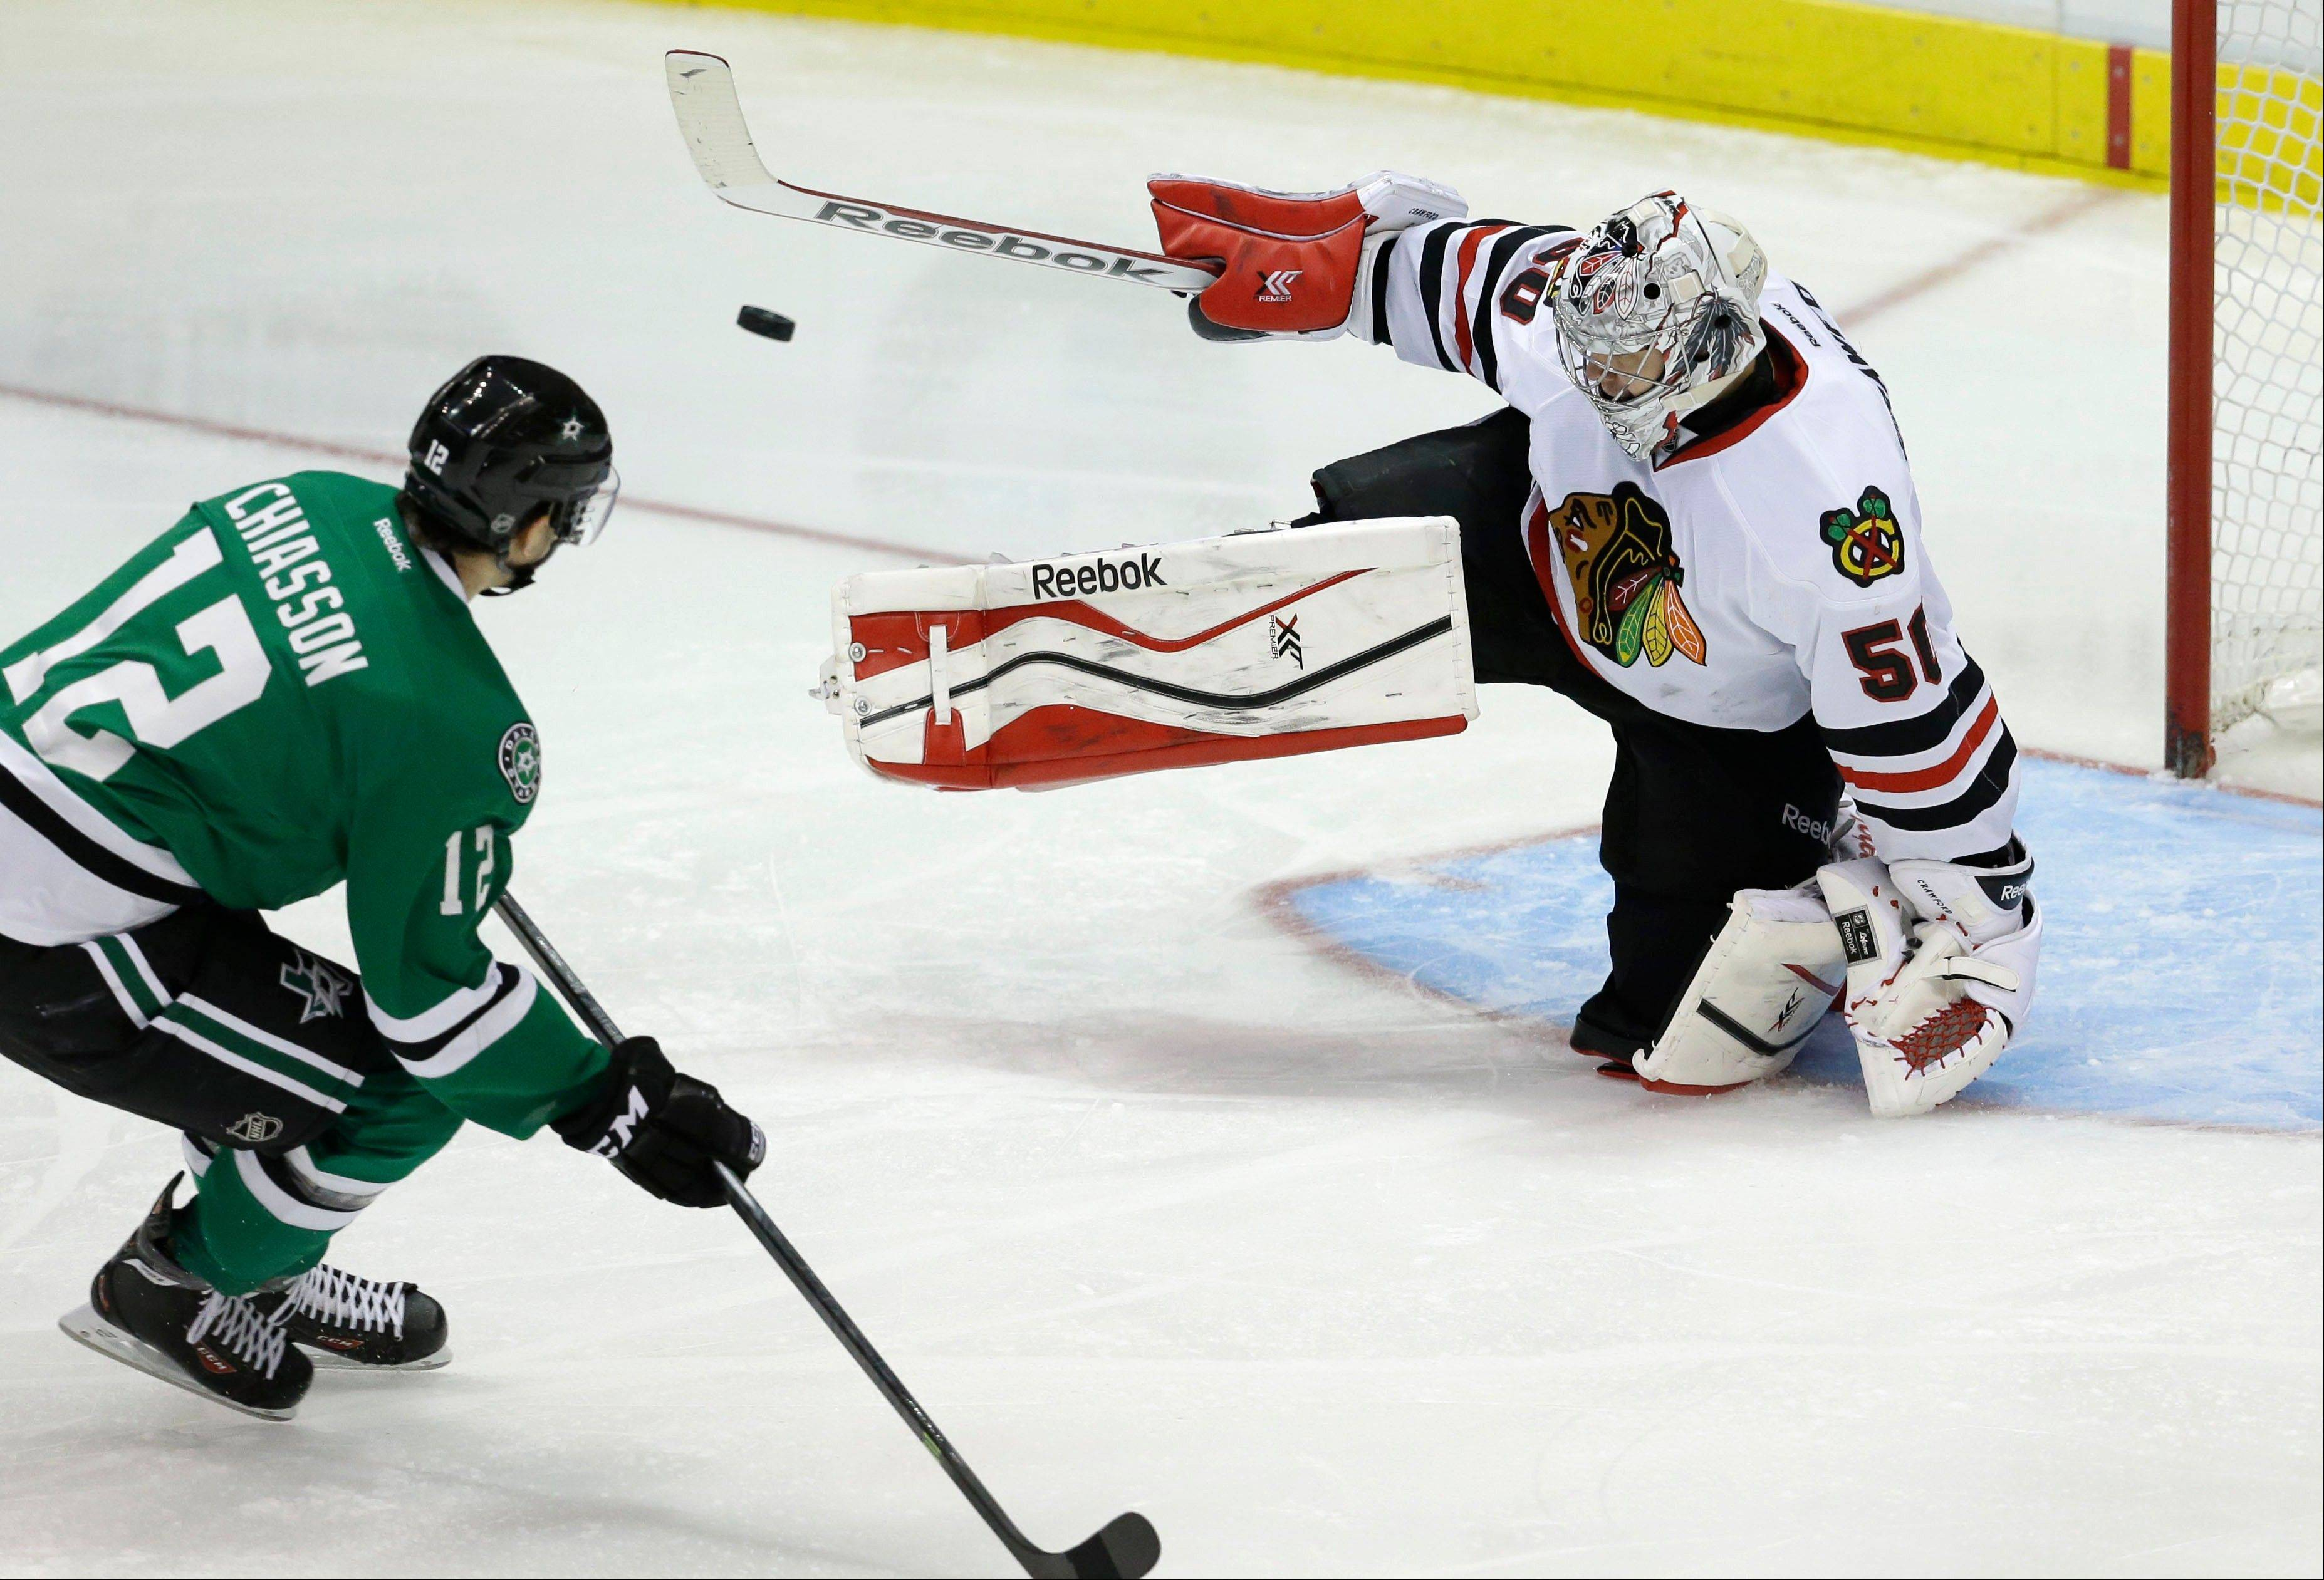 The Stars' Ray Whitney misses a penalty shot against Hawks goalie Corey Crawford during the second period Friday.